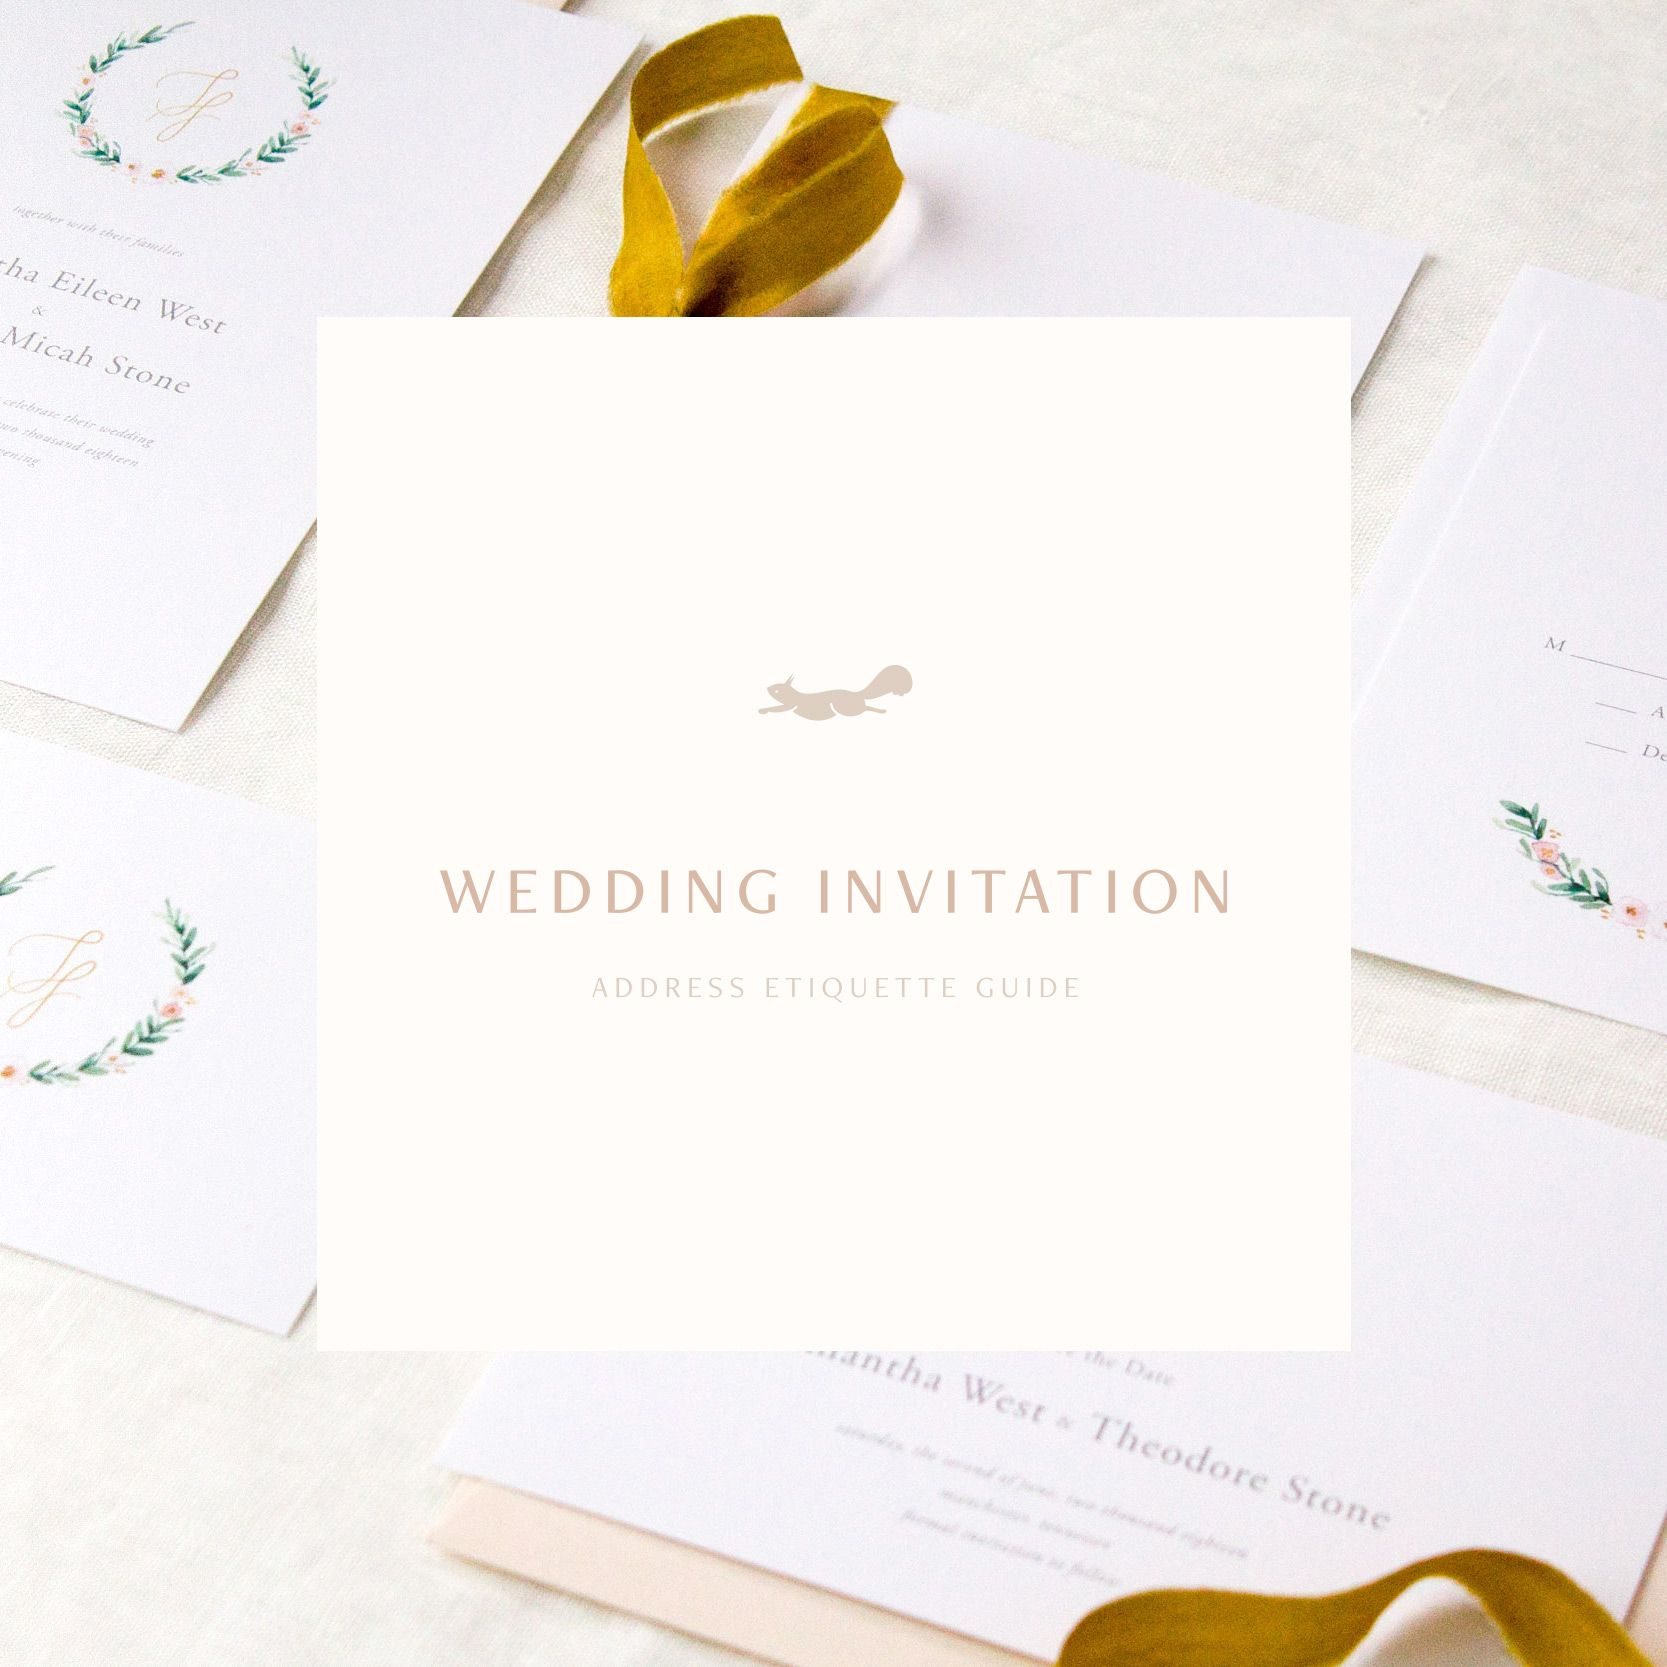 FREE Wedding Invitation Address Etiquette Guide | Download Freebie ...